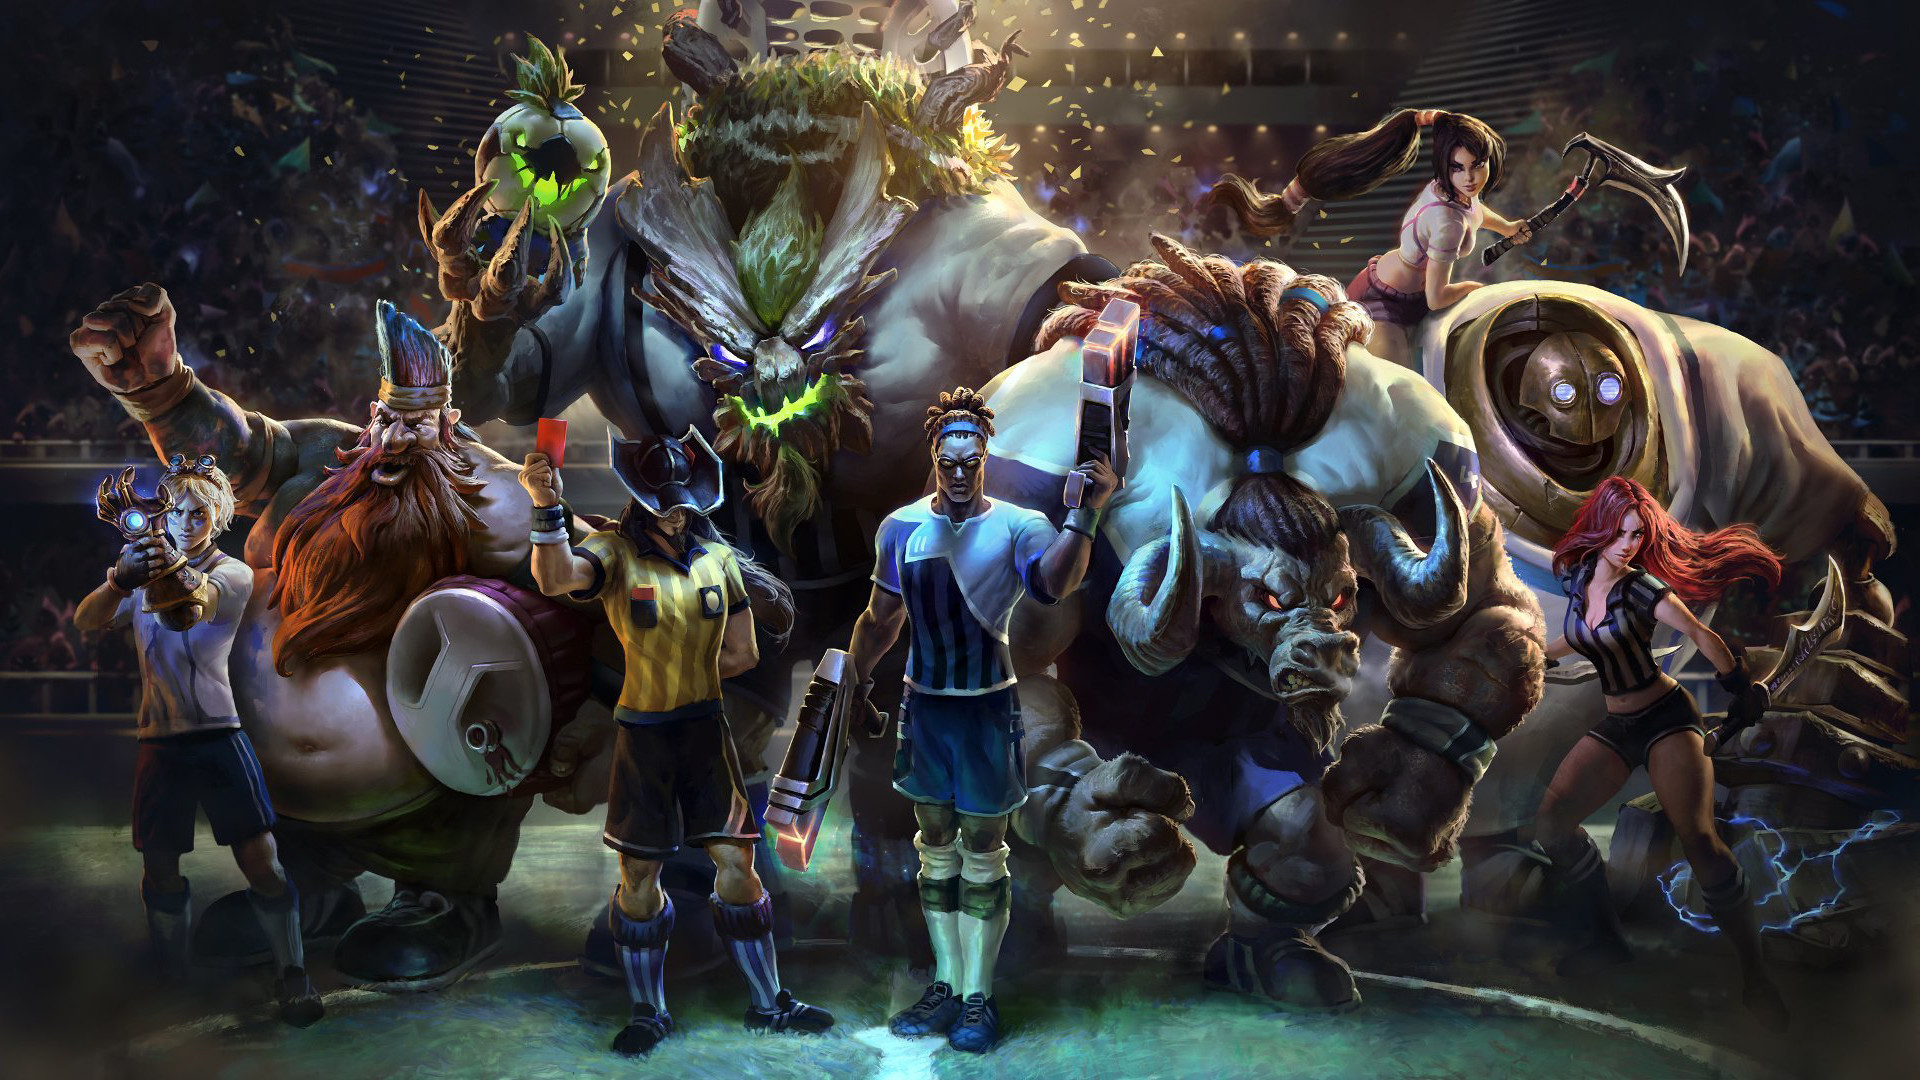 Hd League Of Legends Wallpapers 86 Images